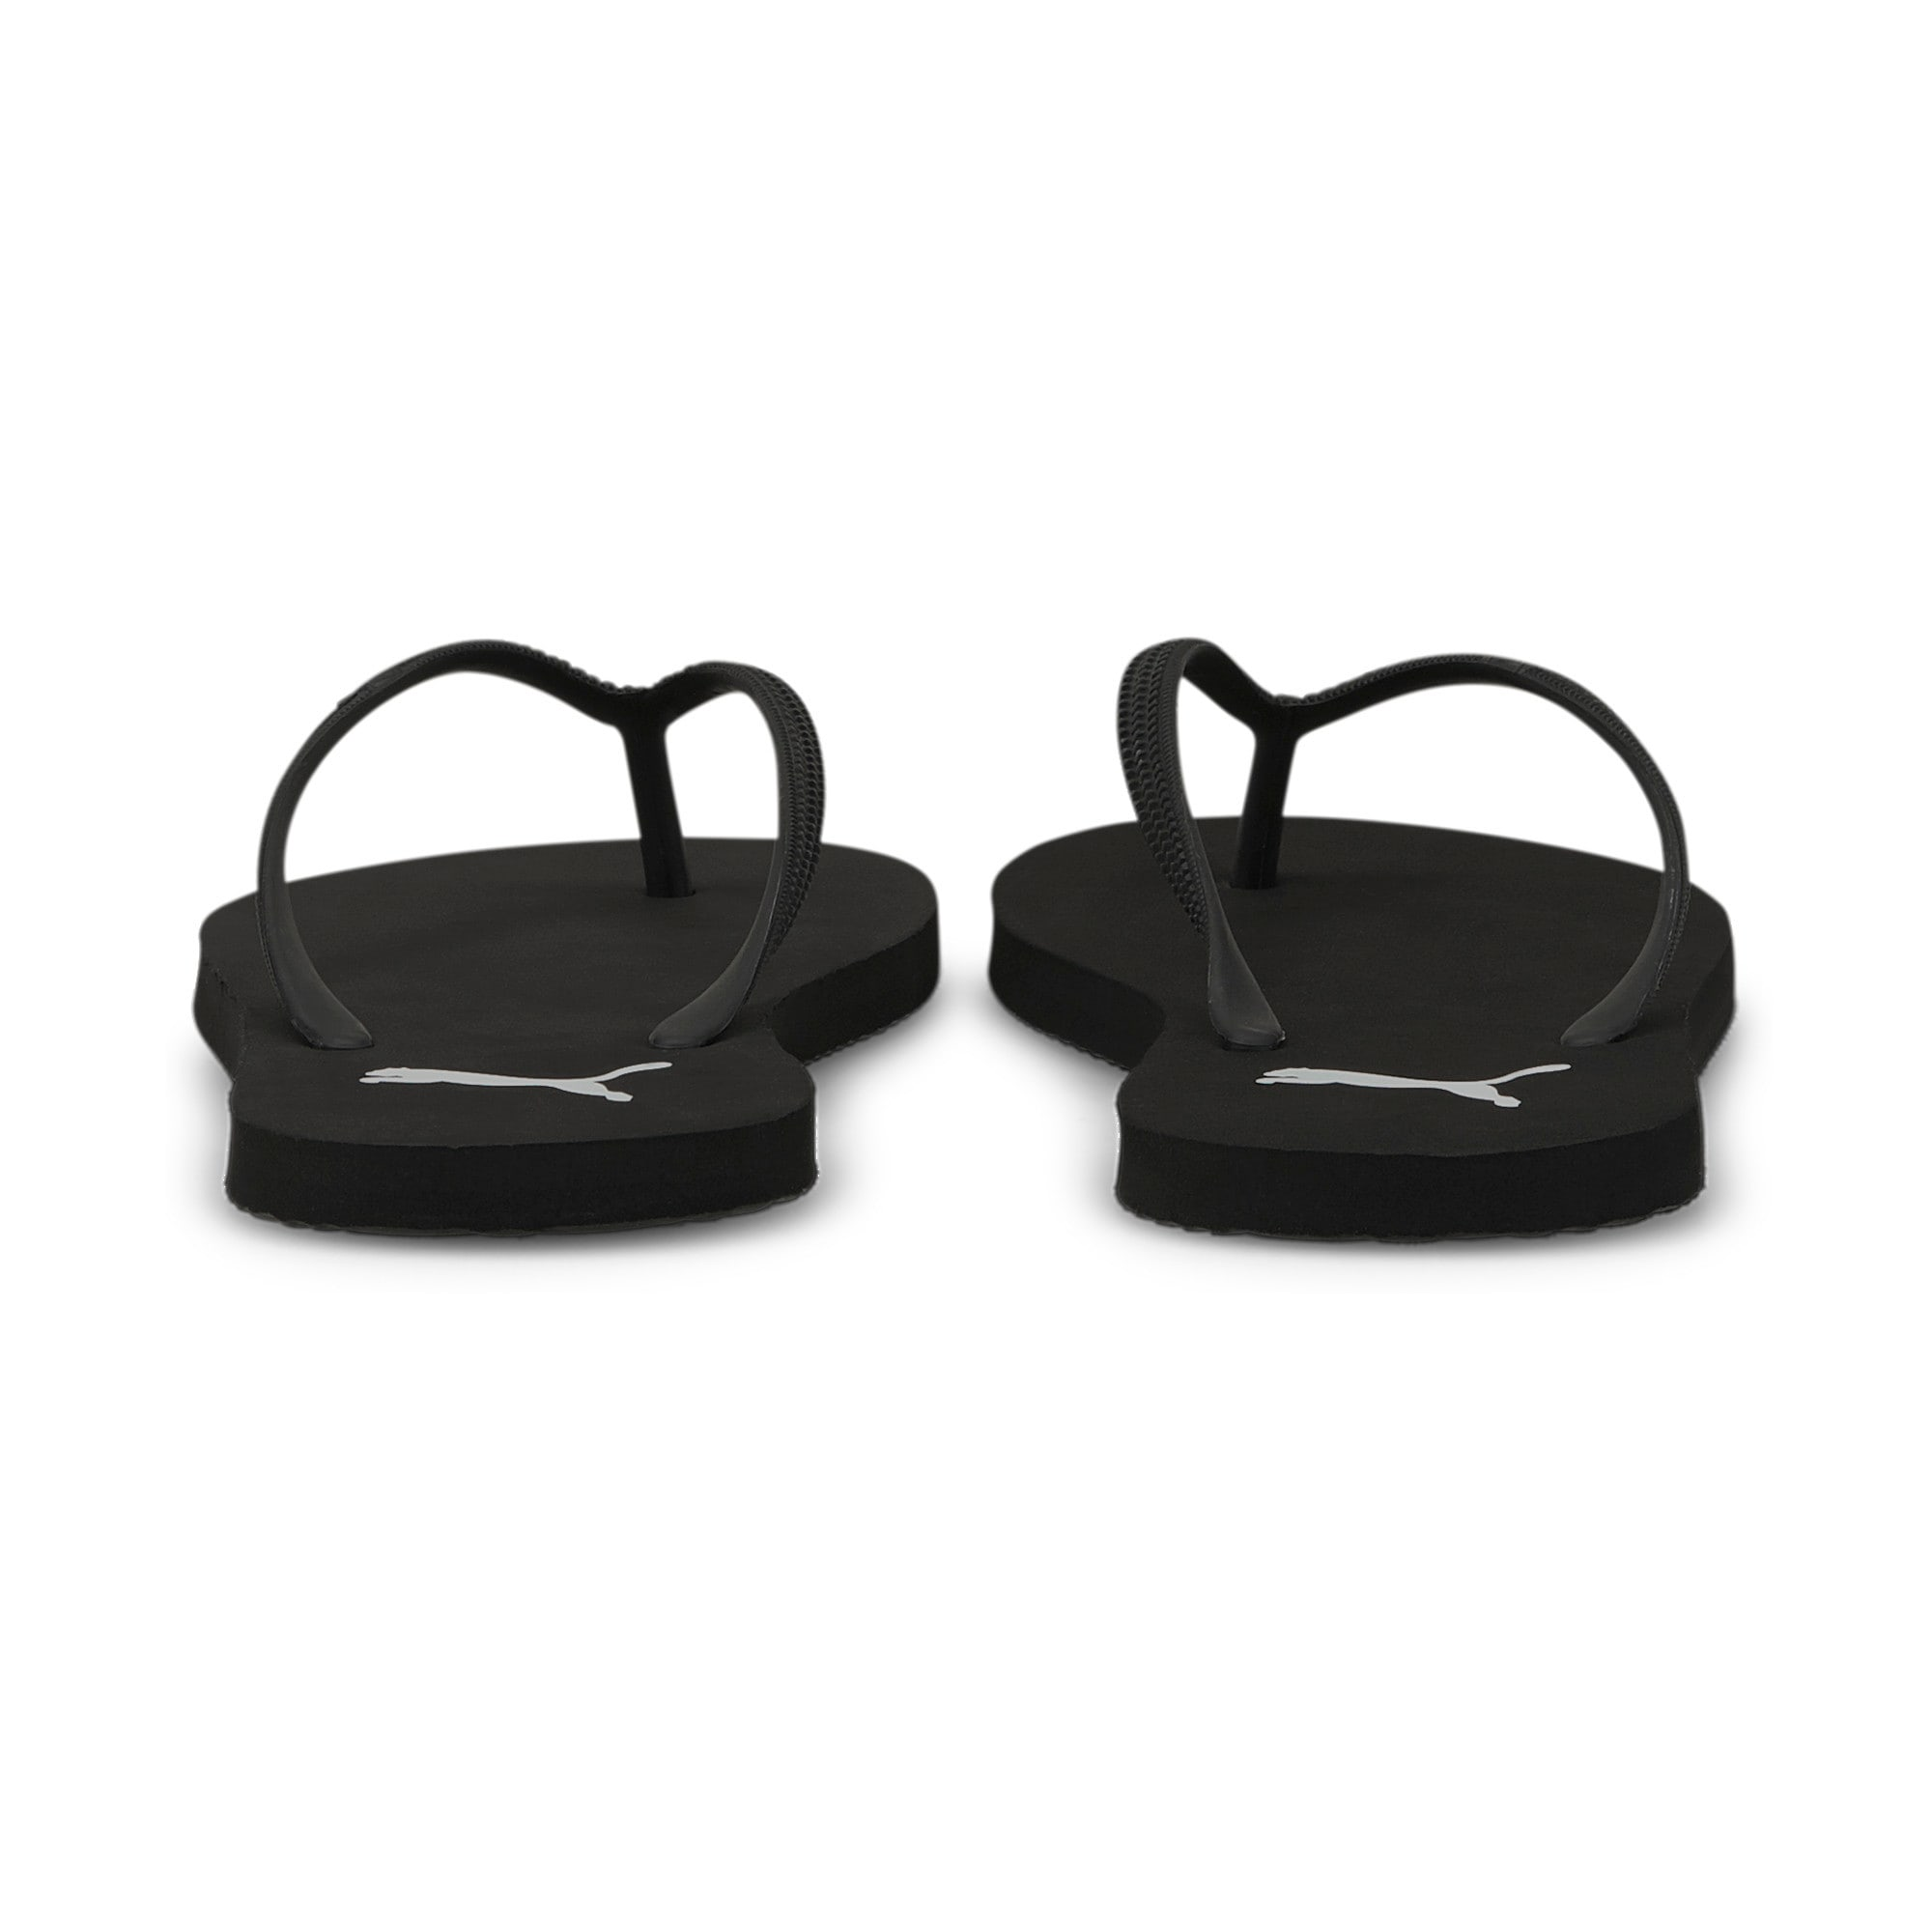 First Flip Women's Sandals, black-white, large